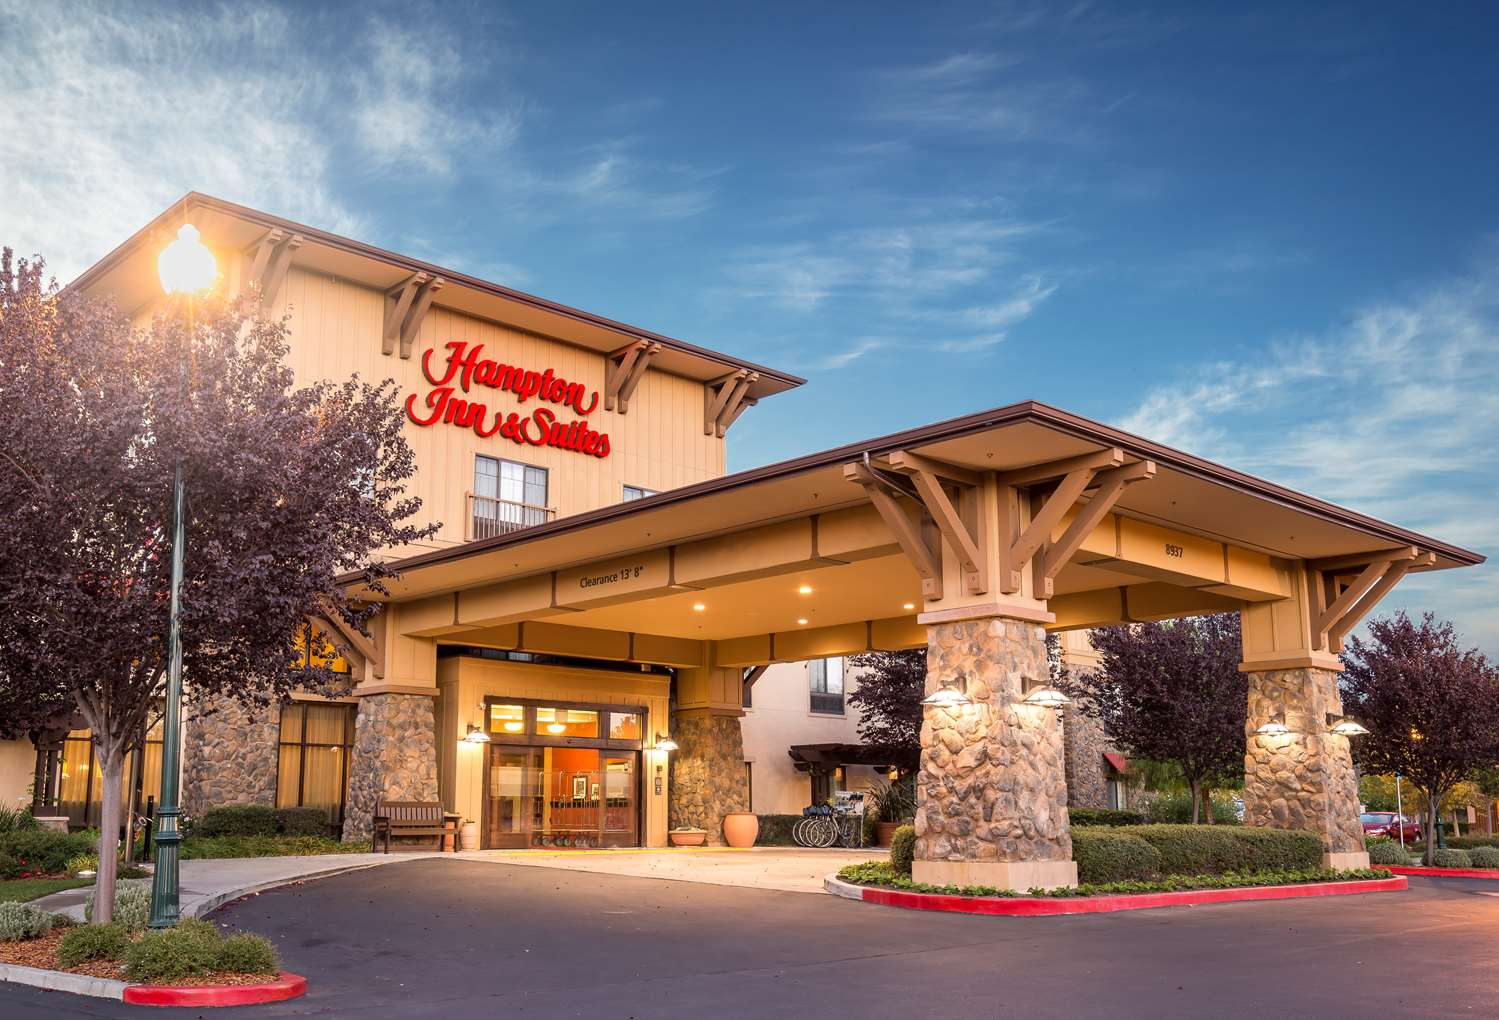 Hampton Inn & Suites Windsor